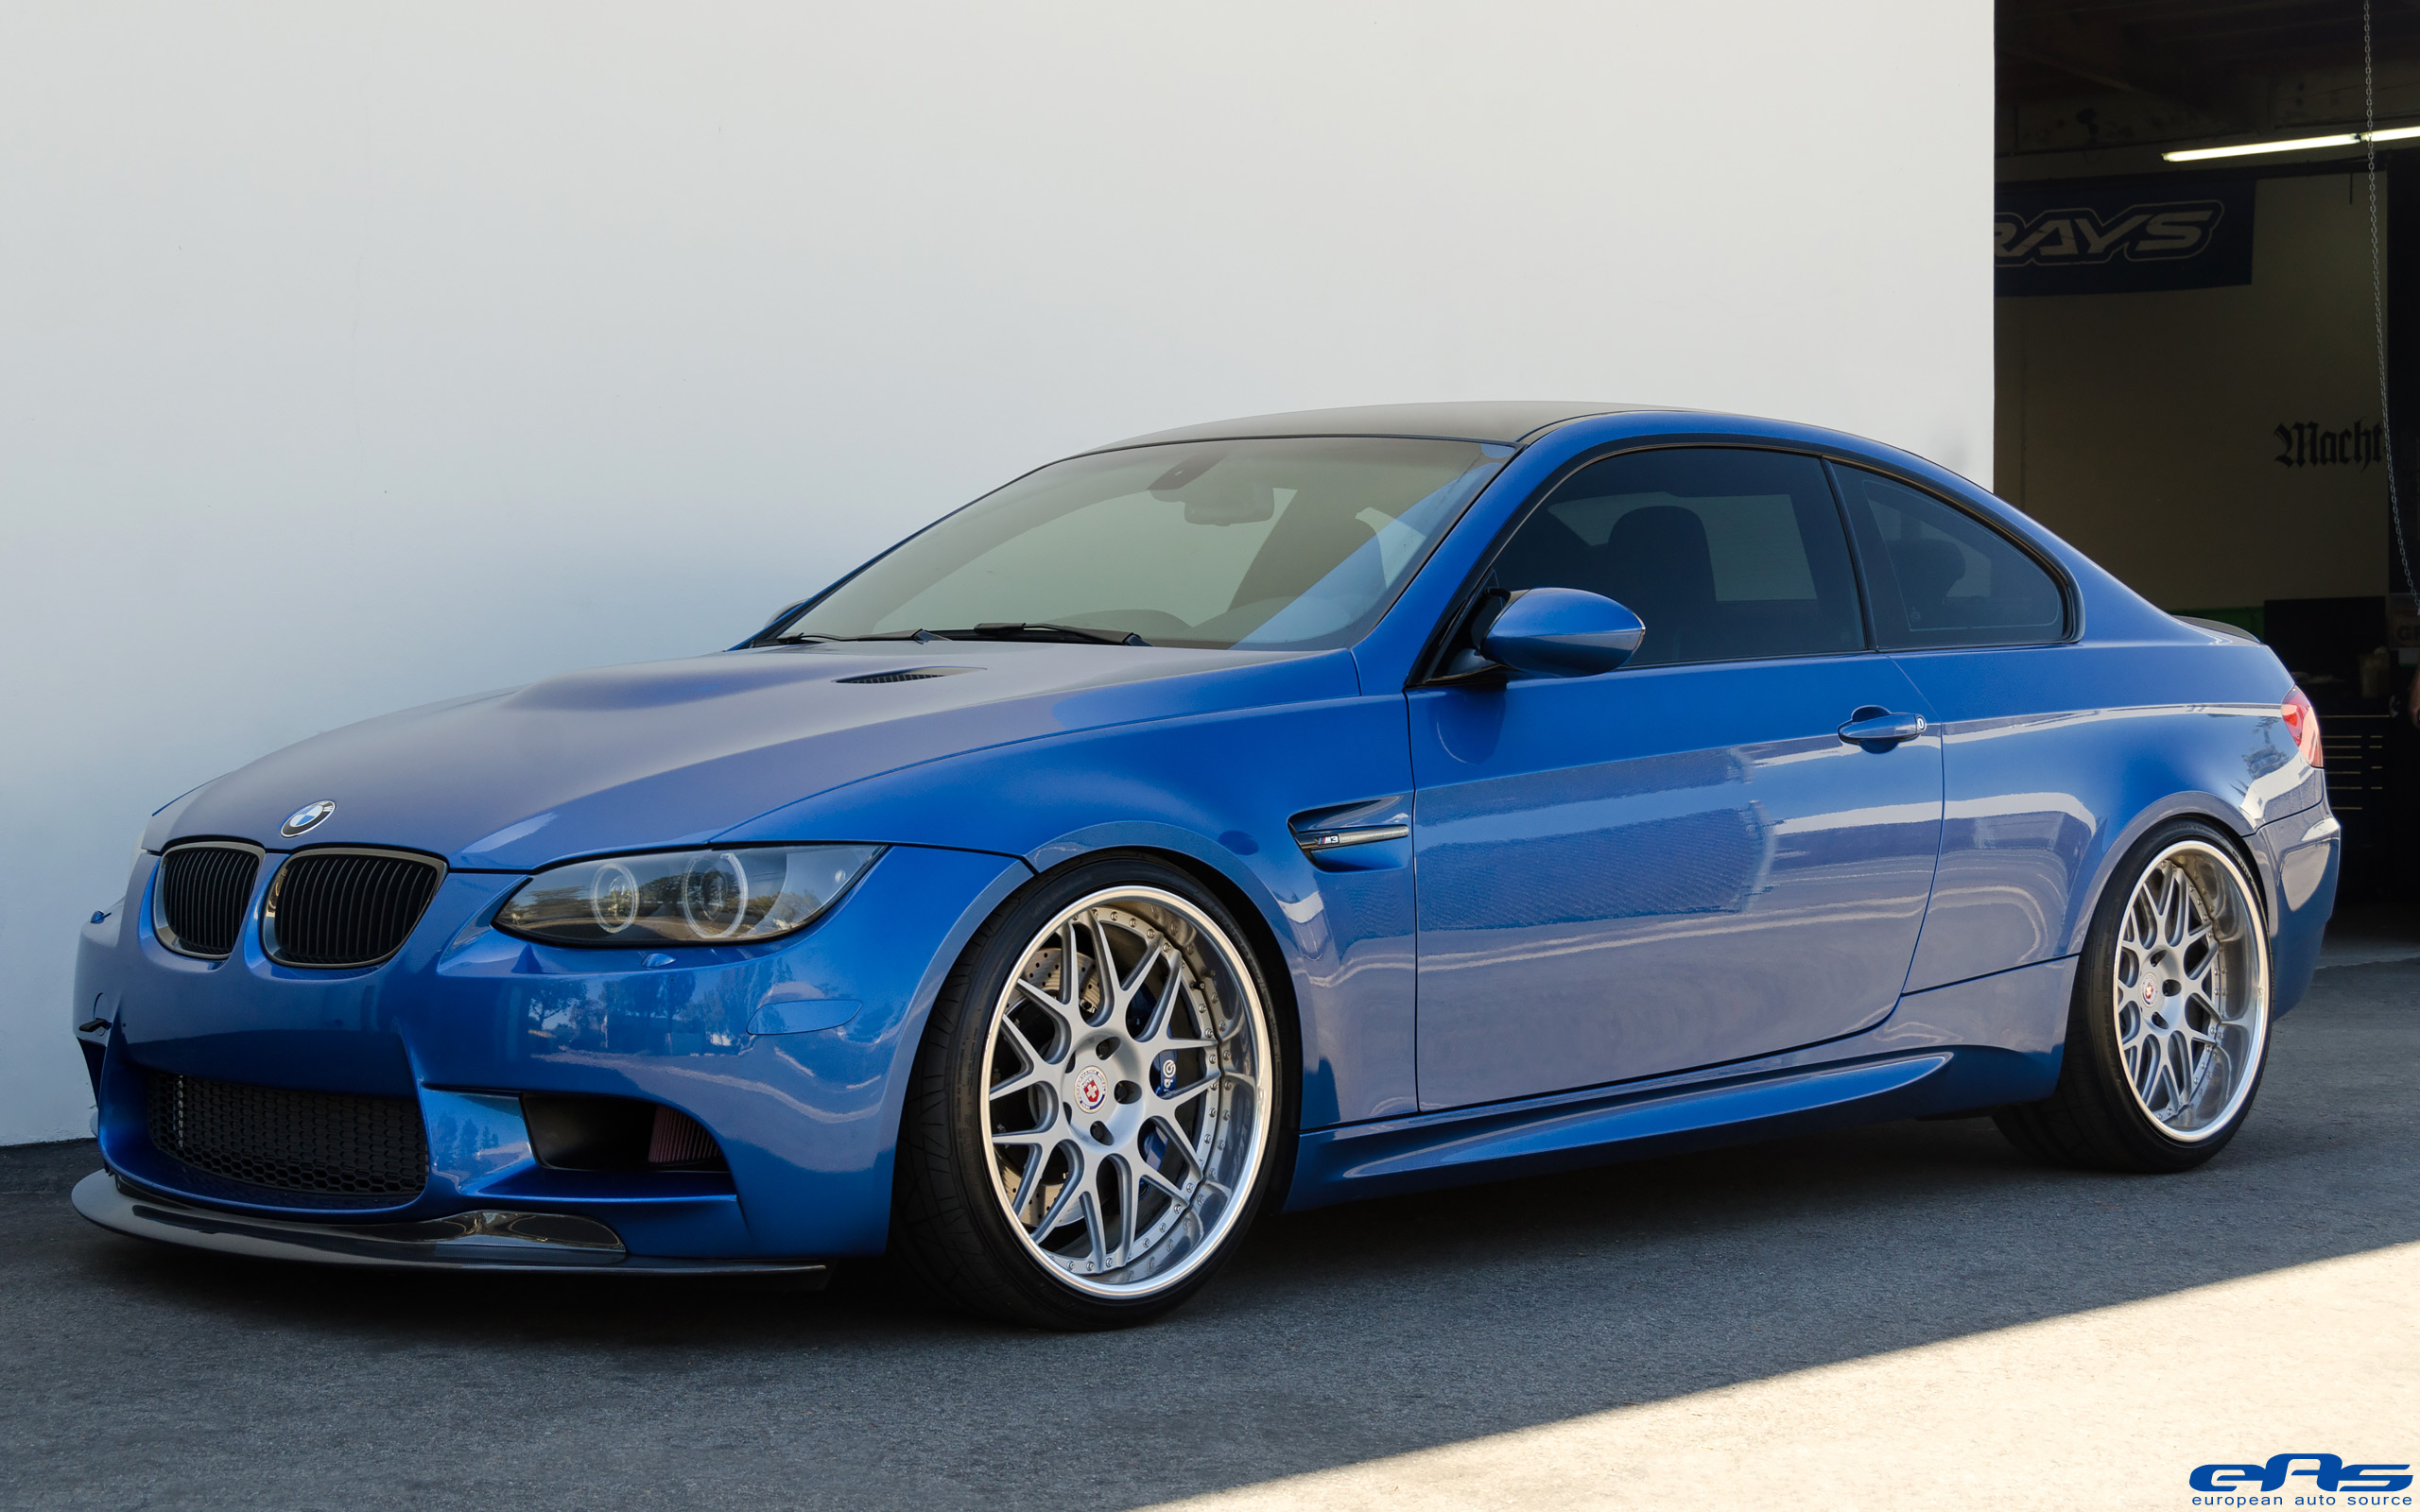 This One Sick BMW E92 M3 Makes Us Think Twice Before Checking Out